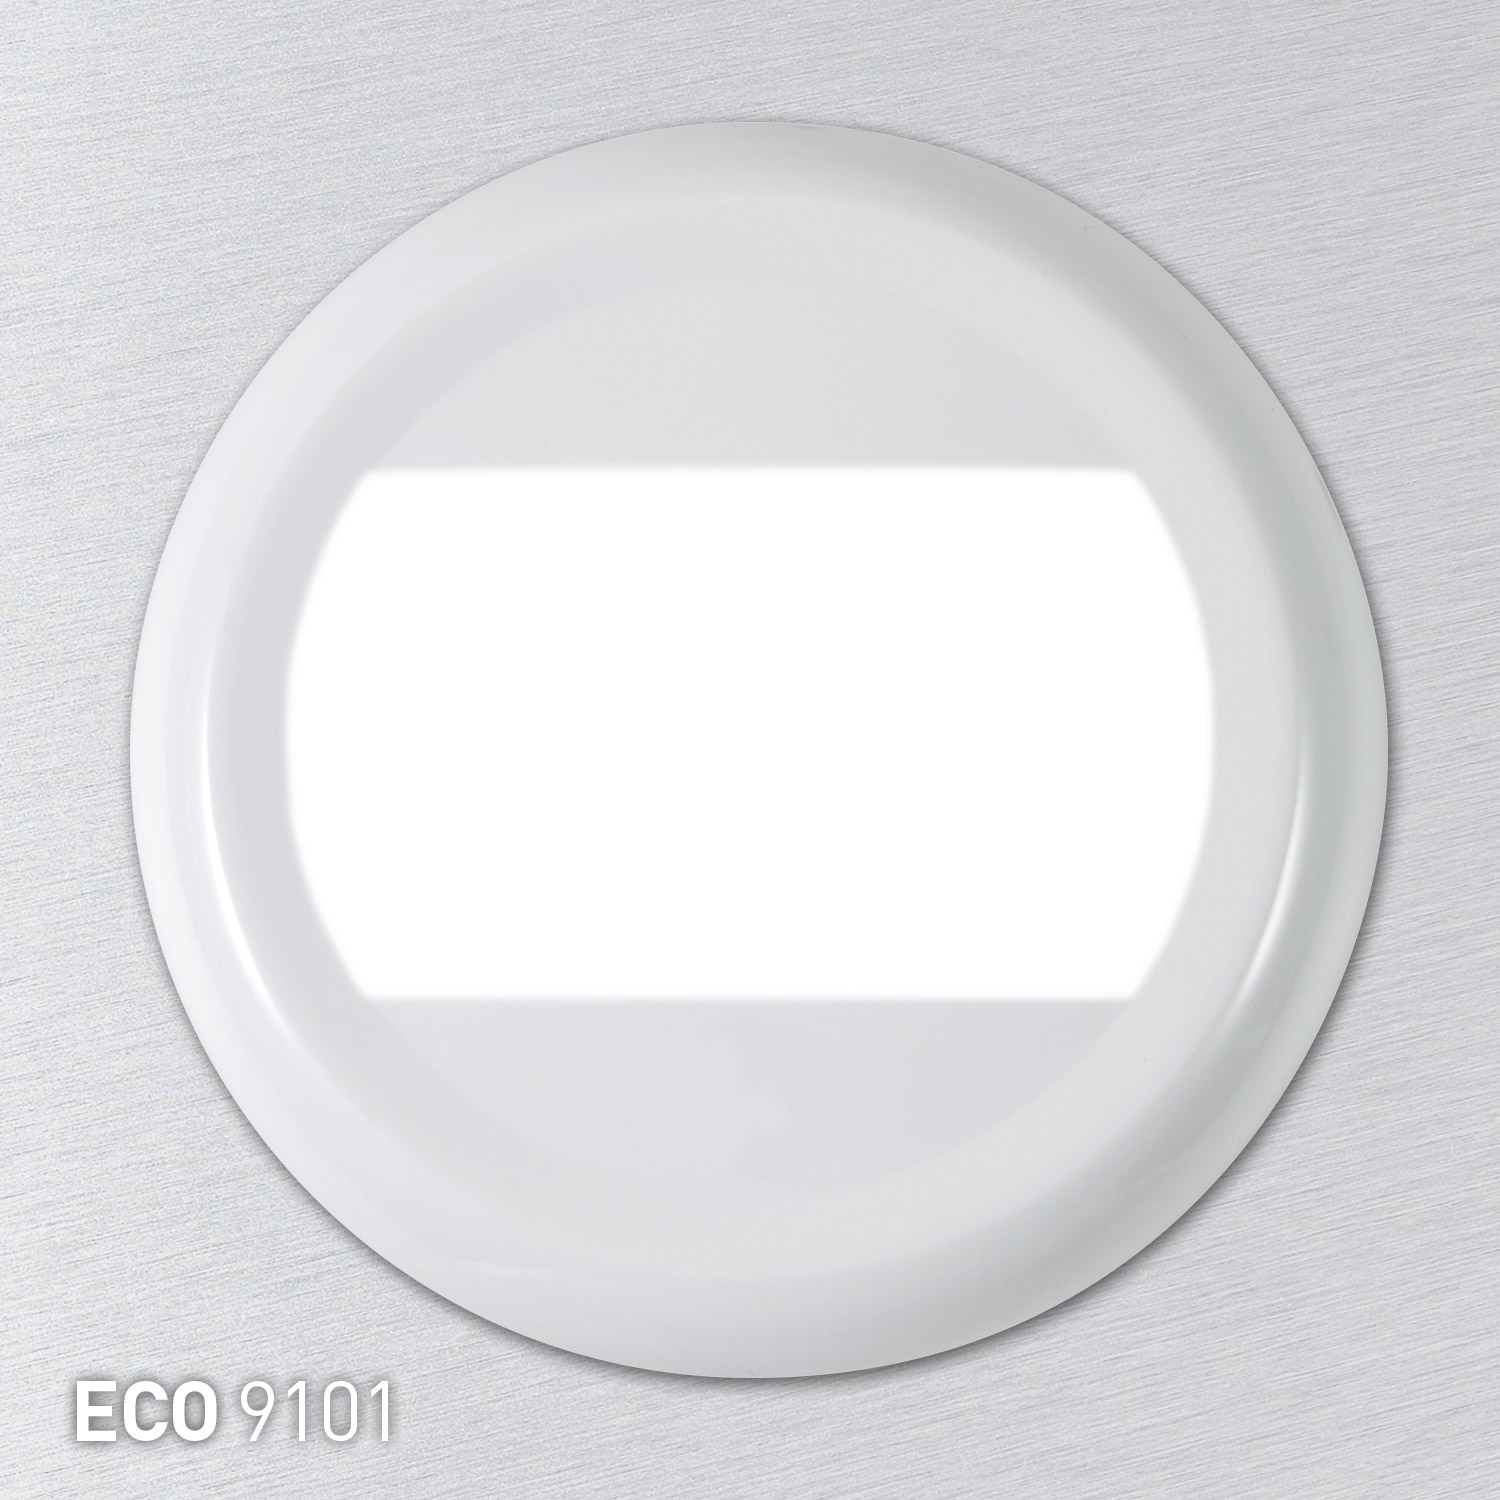 LED vehicle interior light ECO 9101